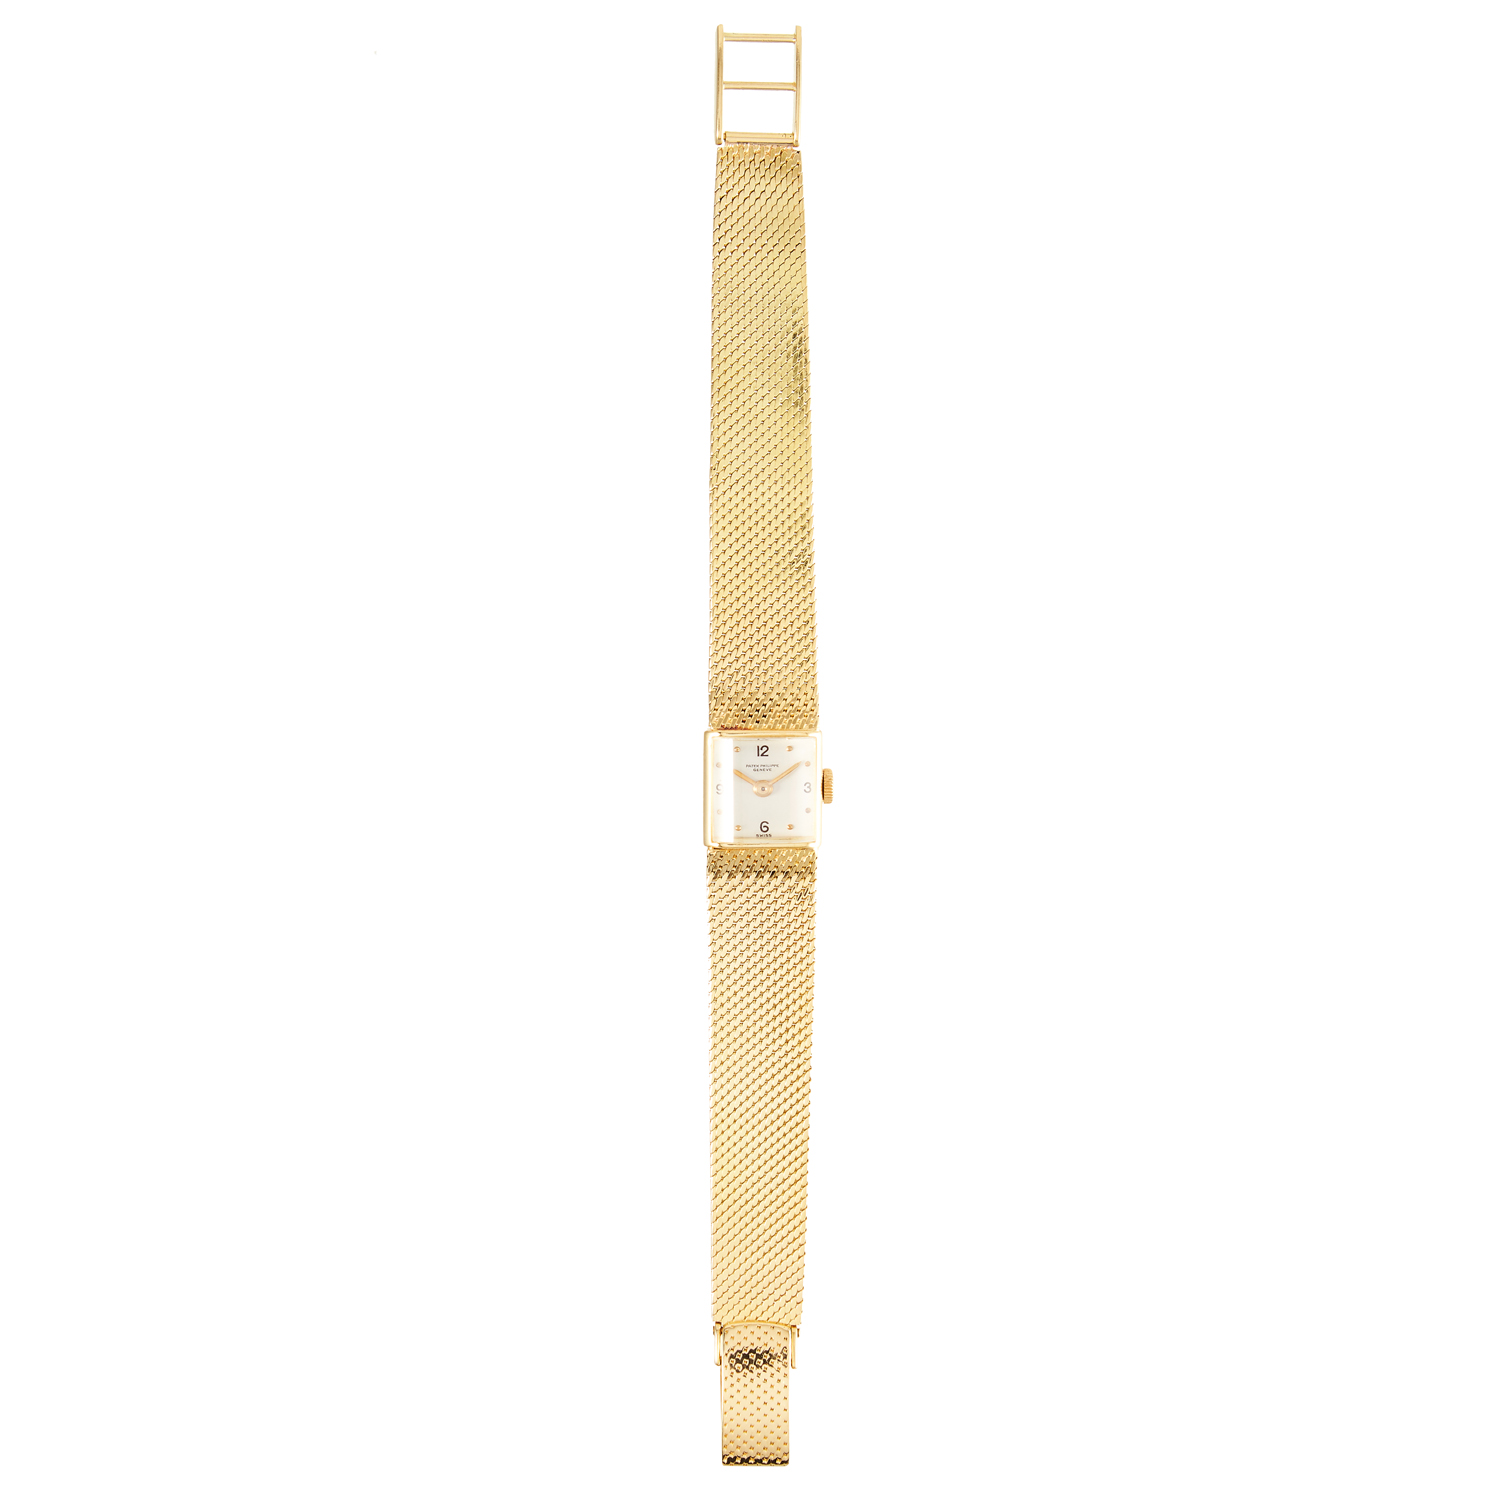 Los 359 - A LADIES WRISTWATCH, PATEK PHILIPPE in 18ct yellow gold, 17cm, 38.88g.